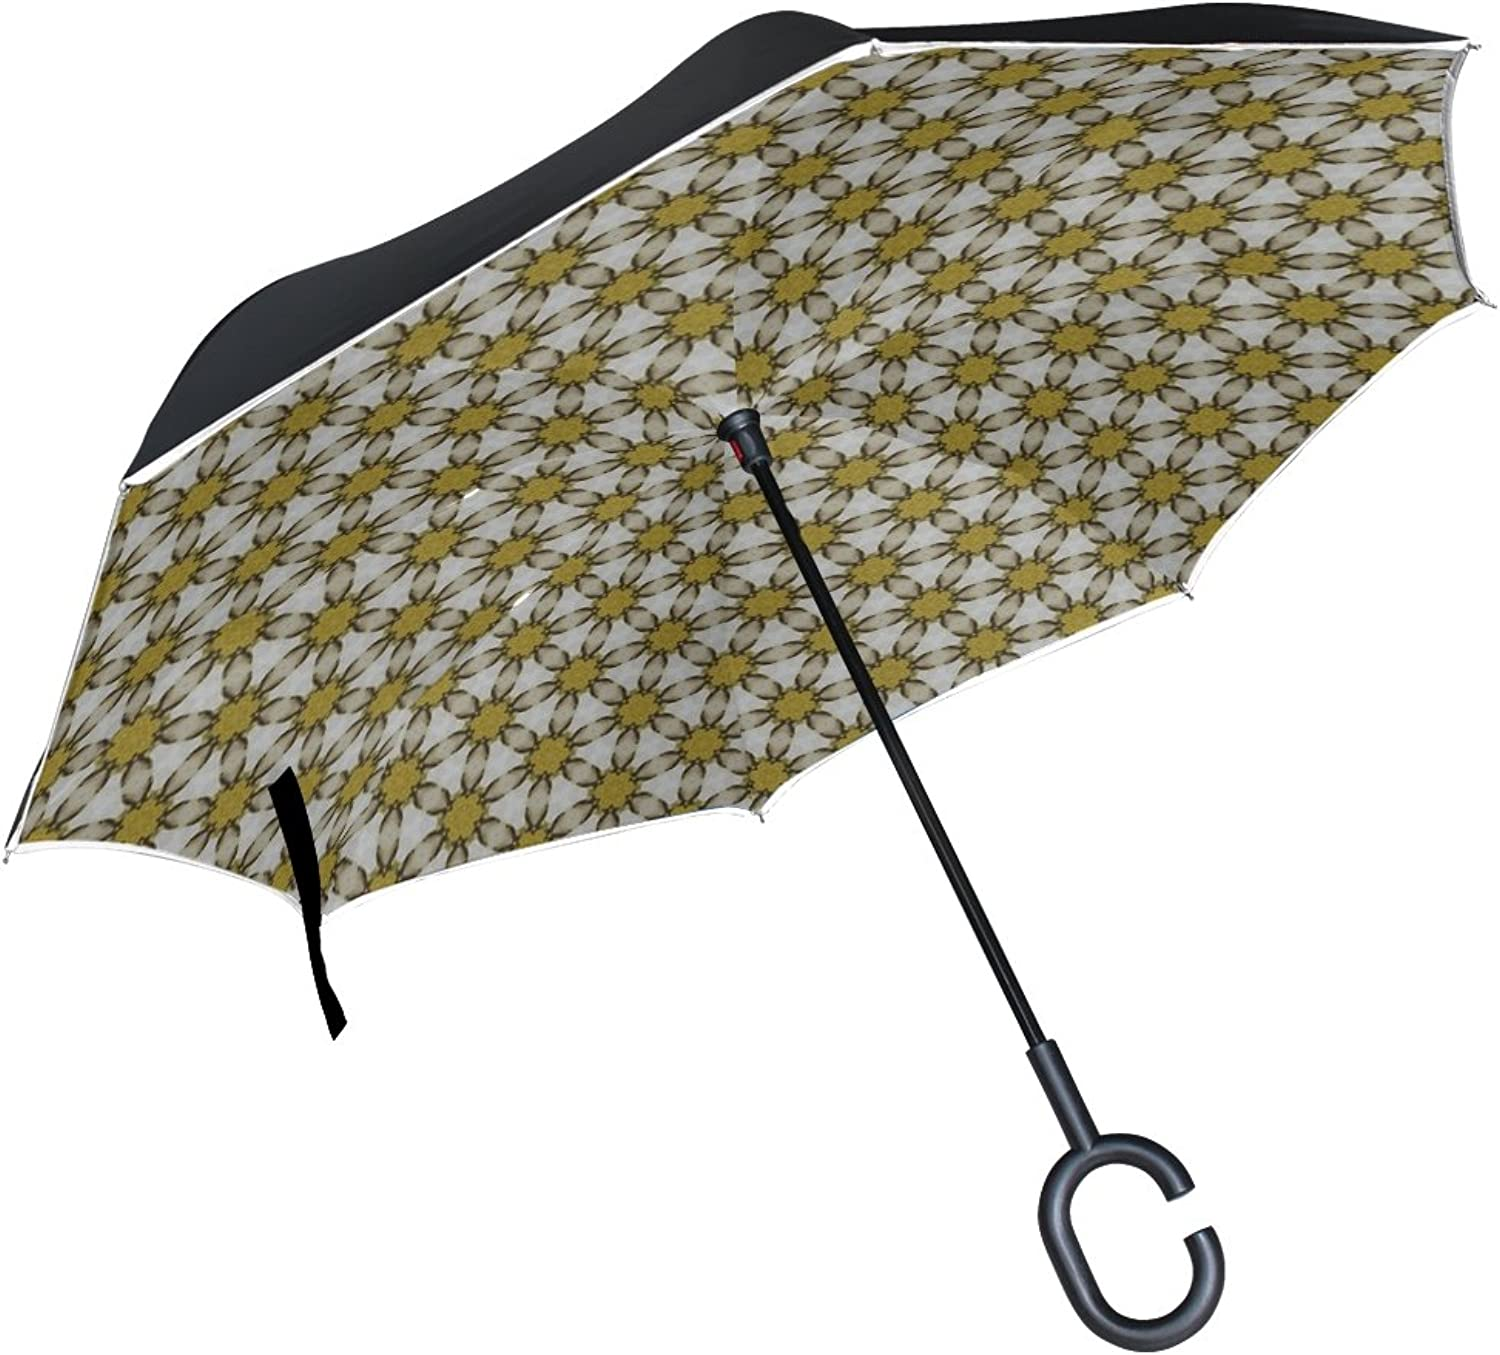 Double Layer Ingreened Pattern Texture Scrapbook Umbrellas Reverse Folding Umbrella Windproof Uv Predection Big Straight Umbrella for Car Rain Outdoor with CShaped Handle